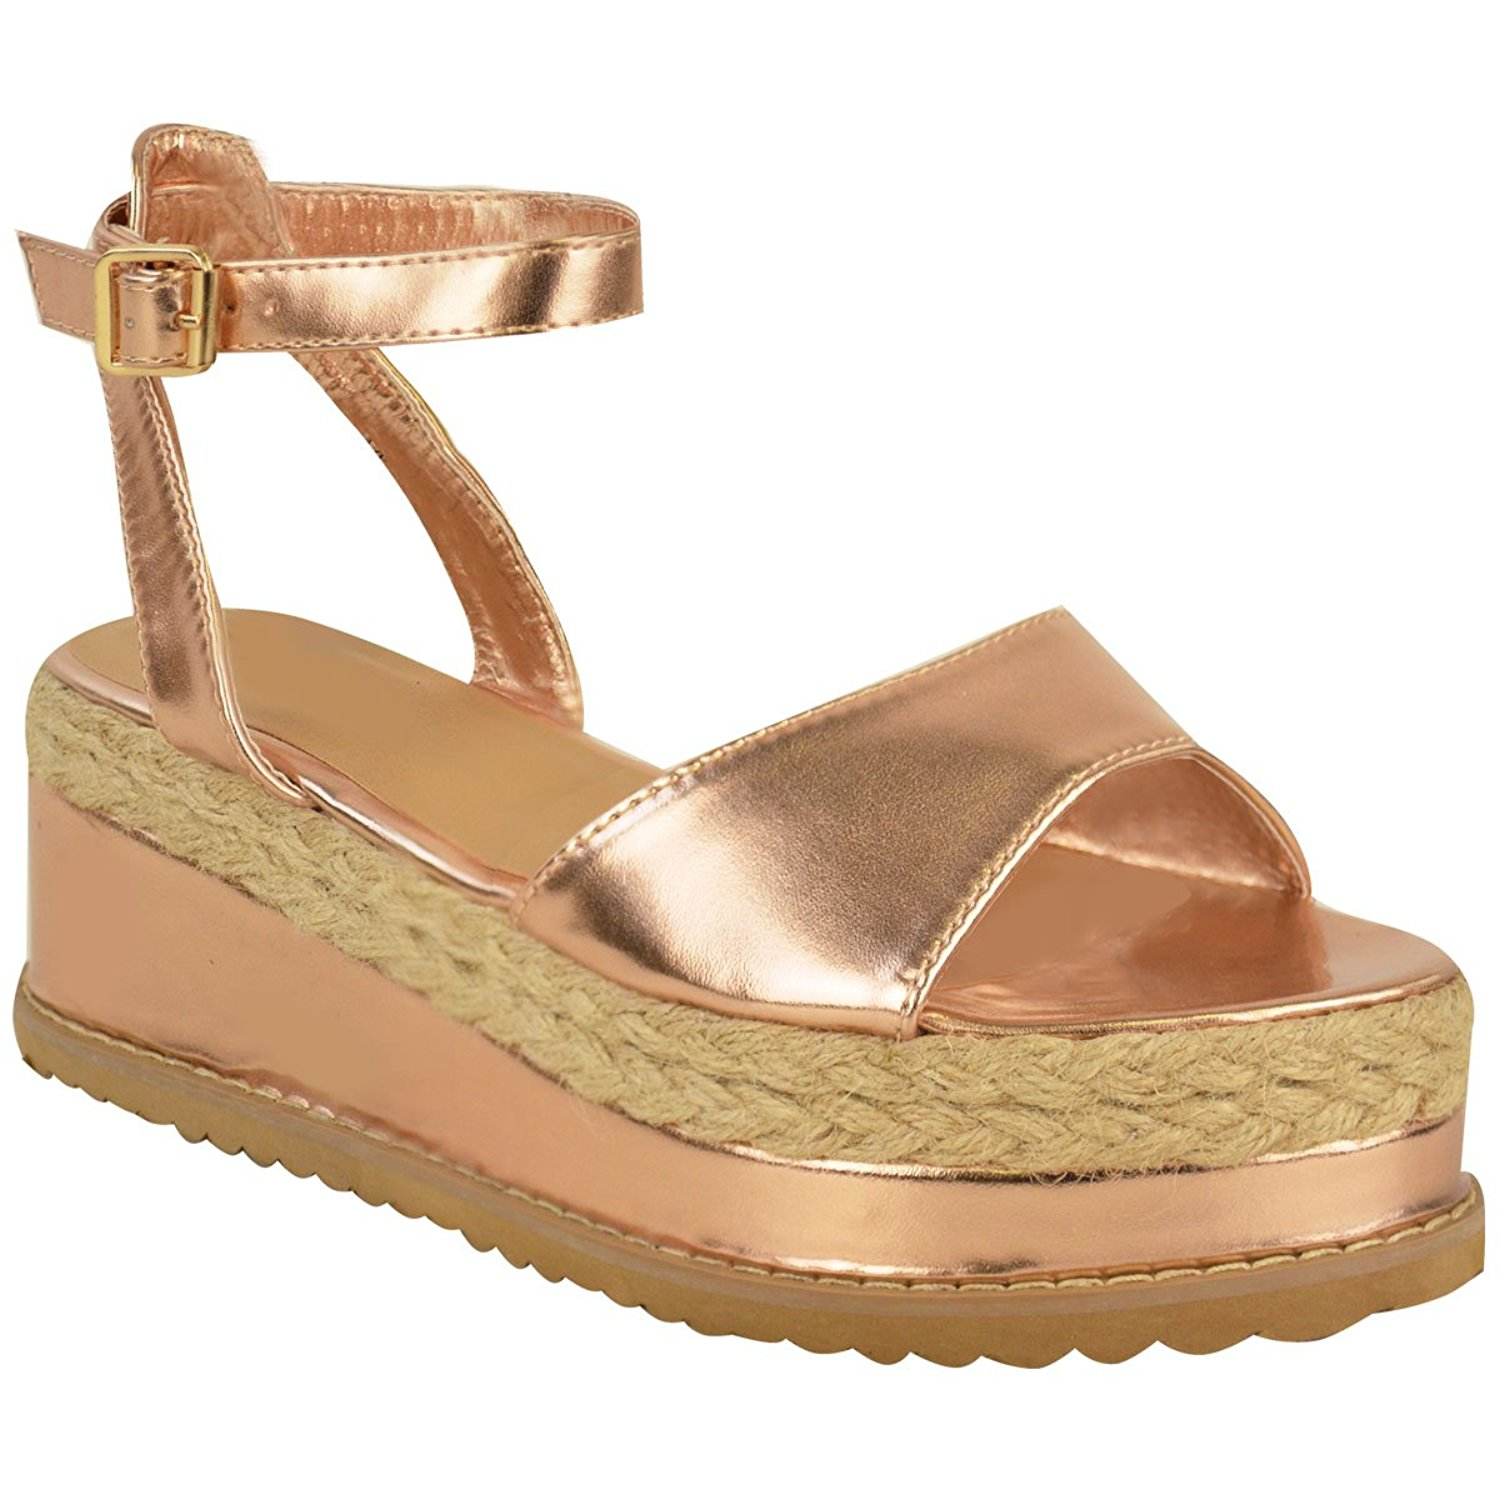 835033ad767b Get Quotations · Fashion Thirsty Womens Chunky Espadrille Strappy Sandals  Flatform Wedge Shoes Size